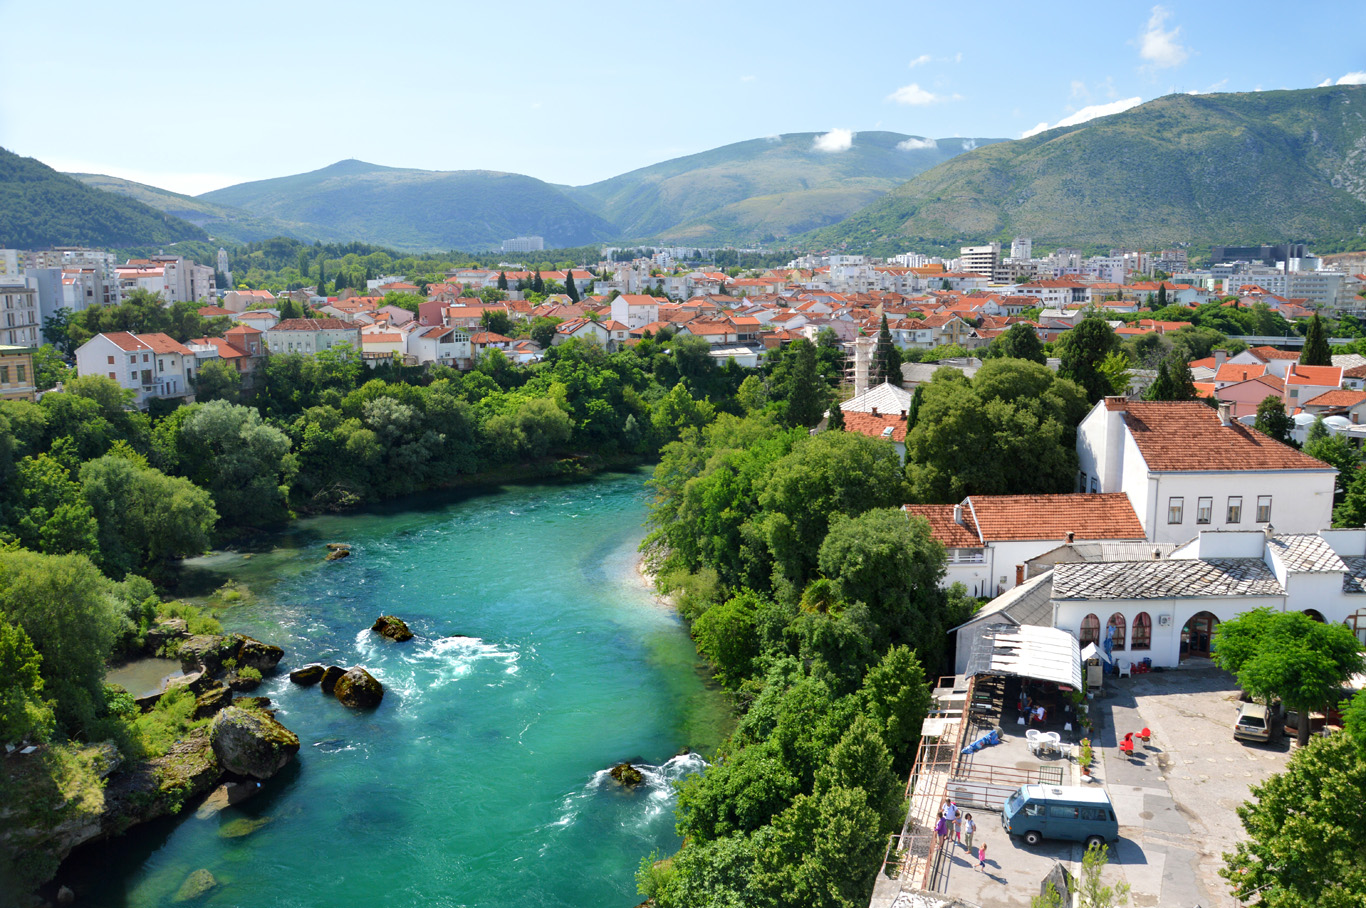 The new part of Mostar